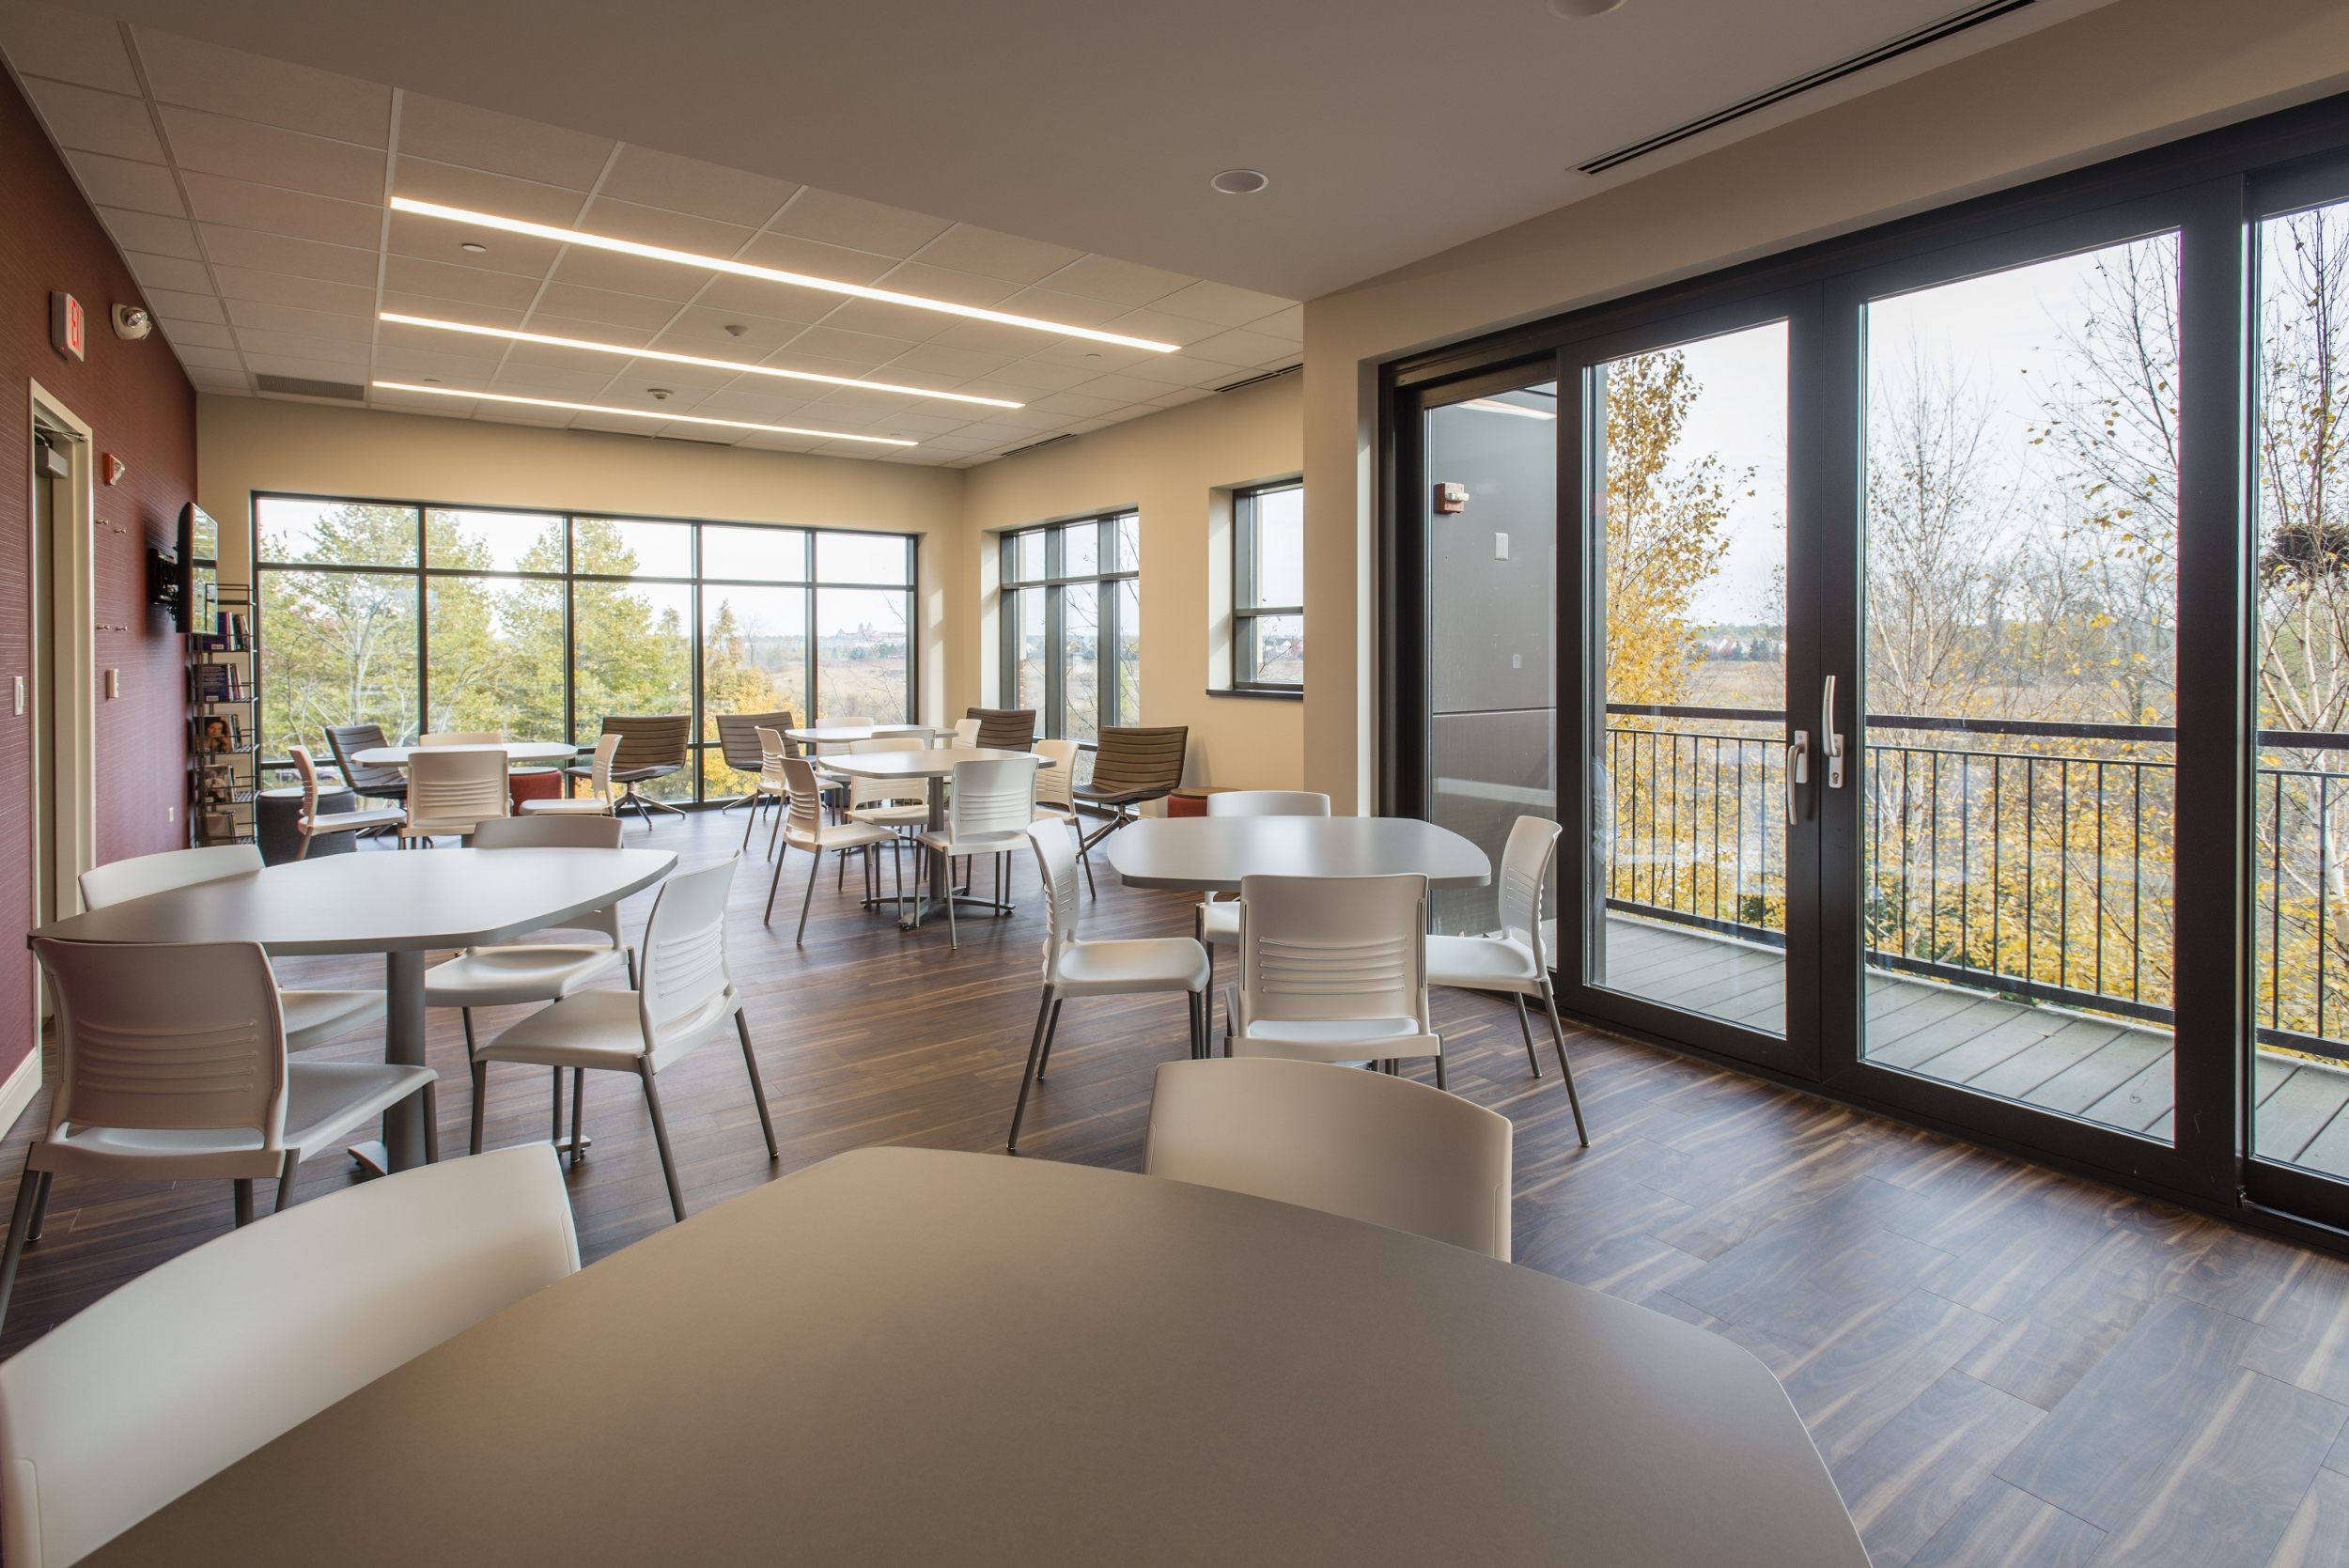 Interior view of dining area, JourneyCare.